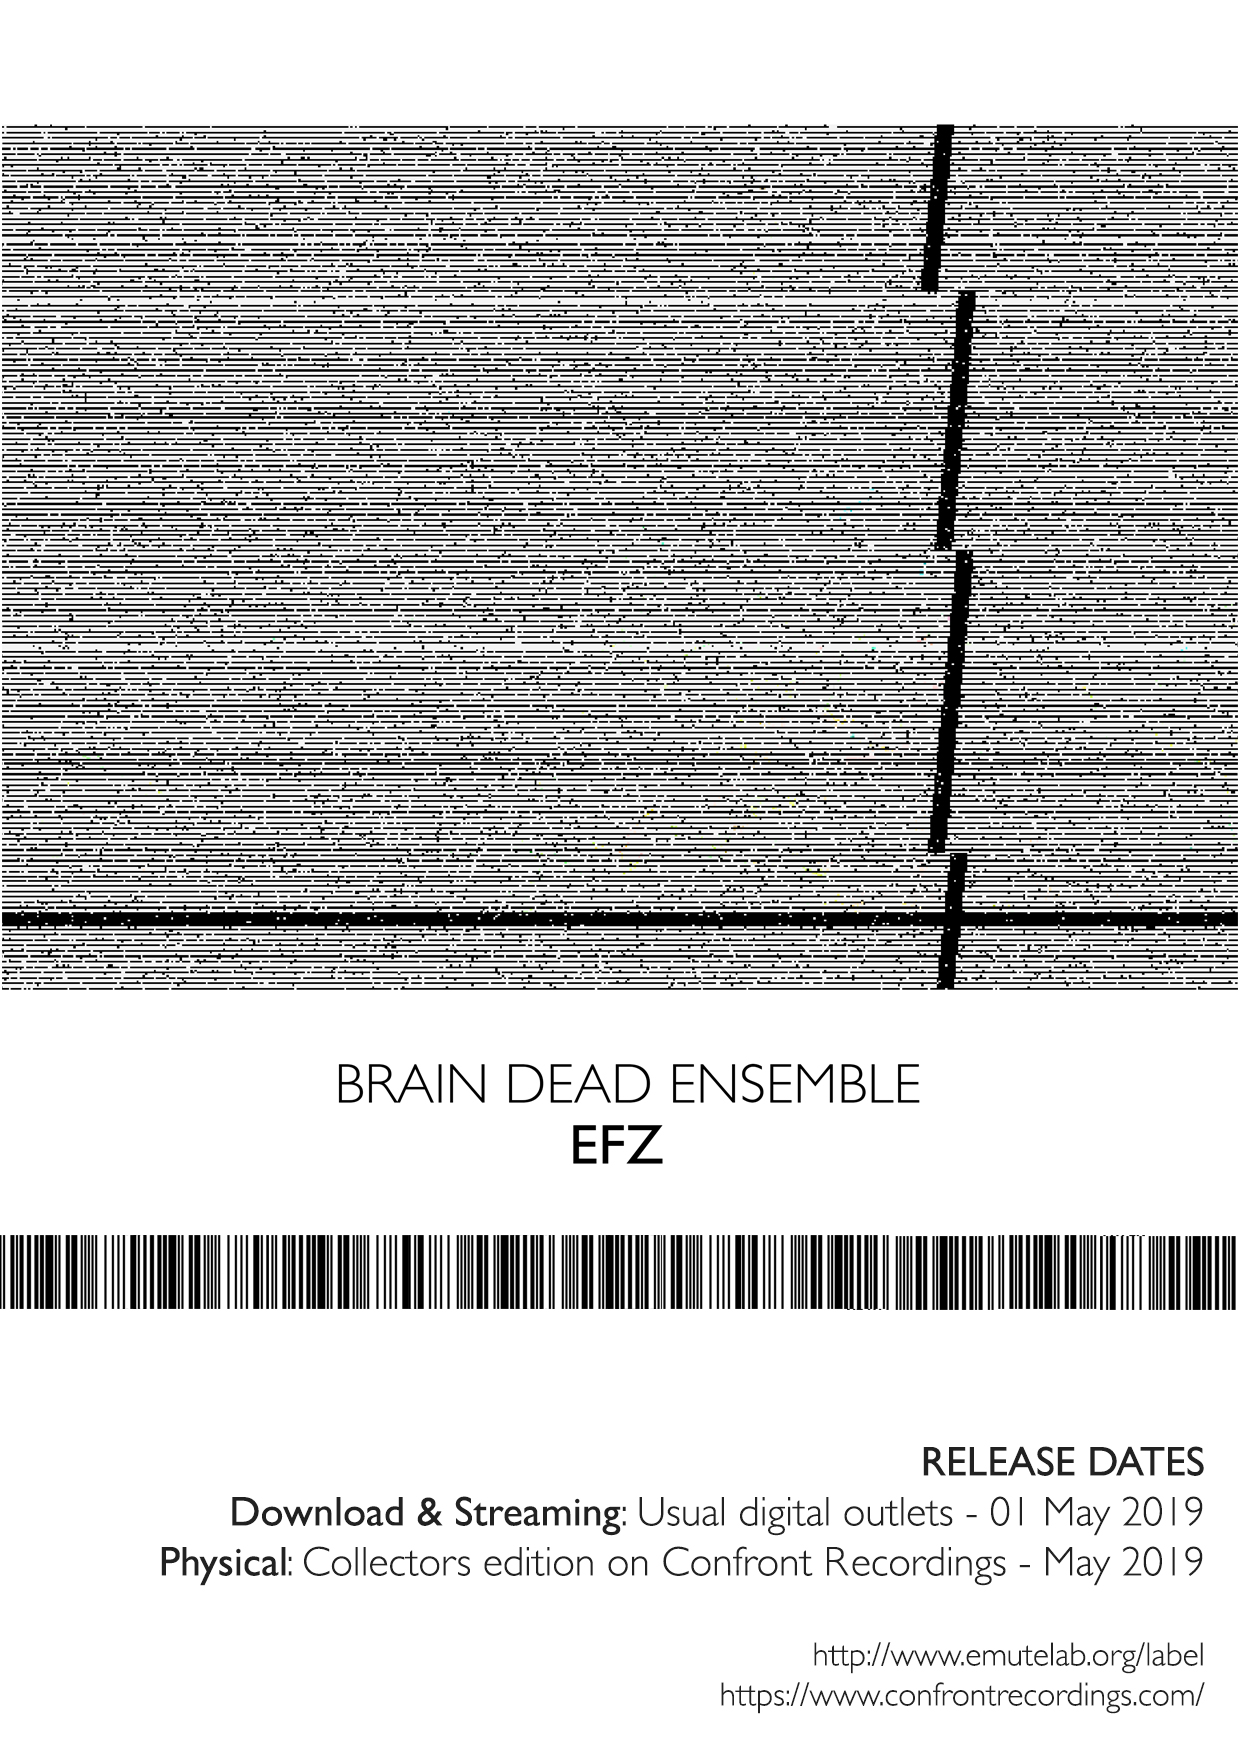 Flyer of BDE release